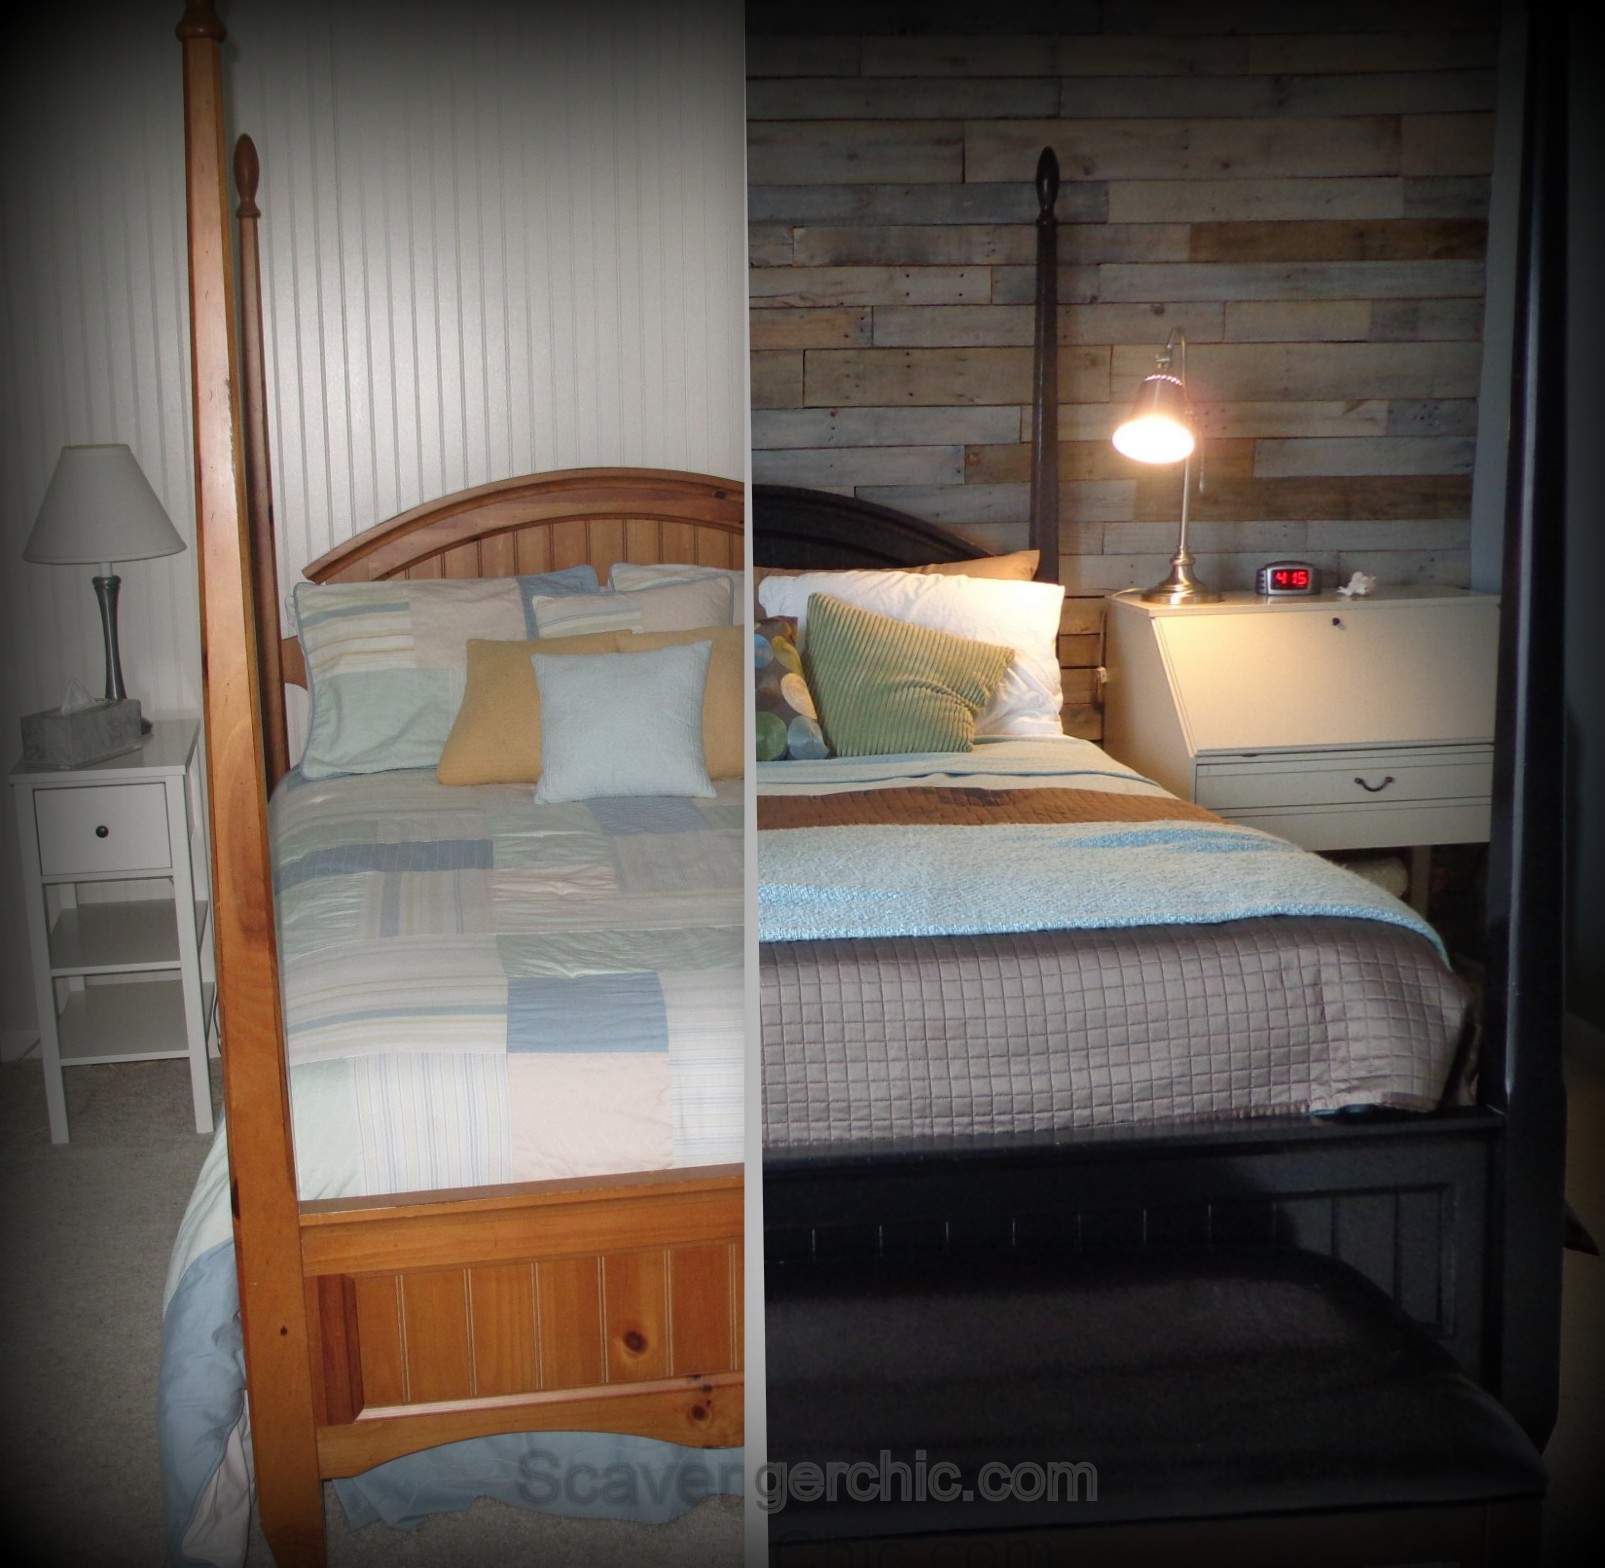 Very best Warm and Rustic, Pallet Wood Wall – Scavenger Chic AZ98